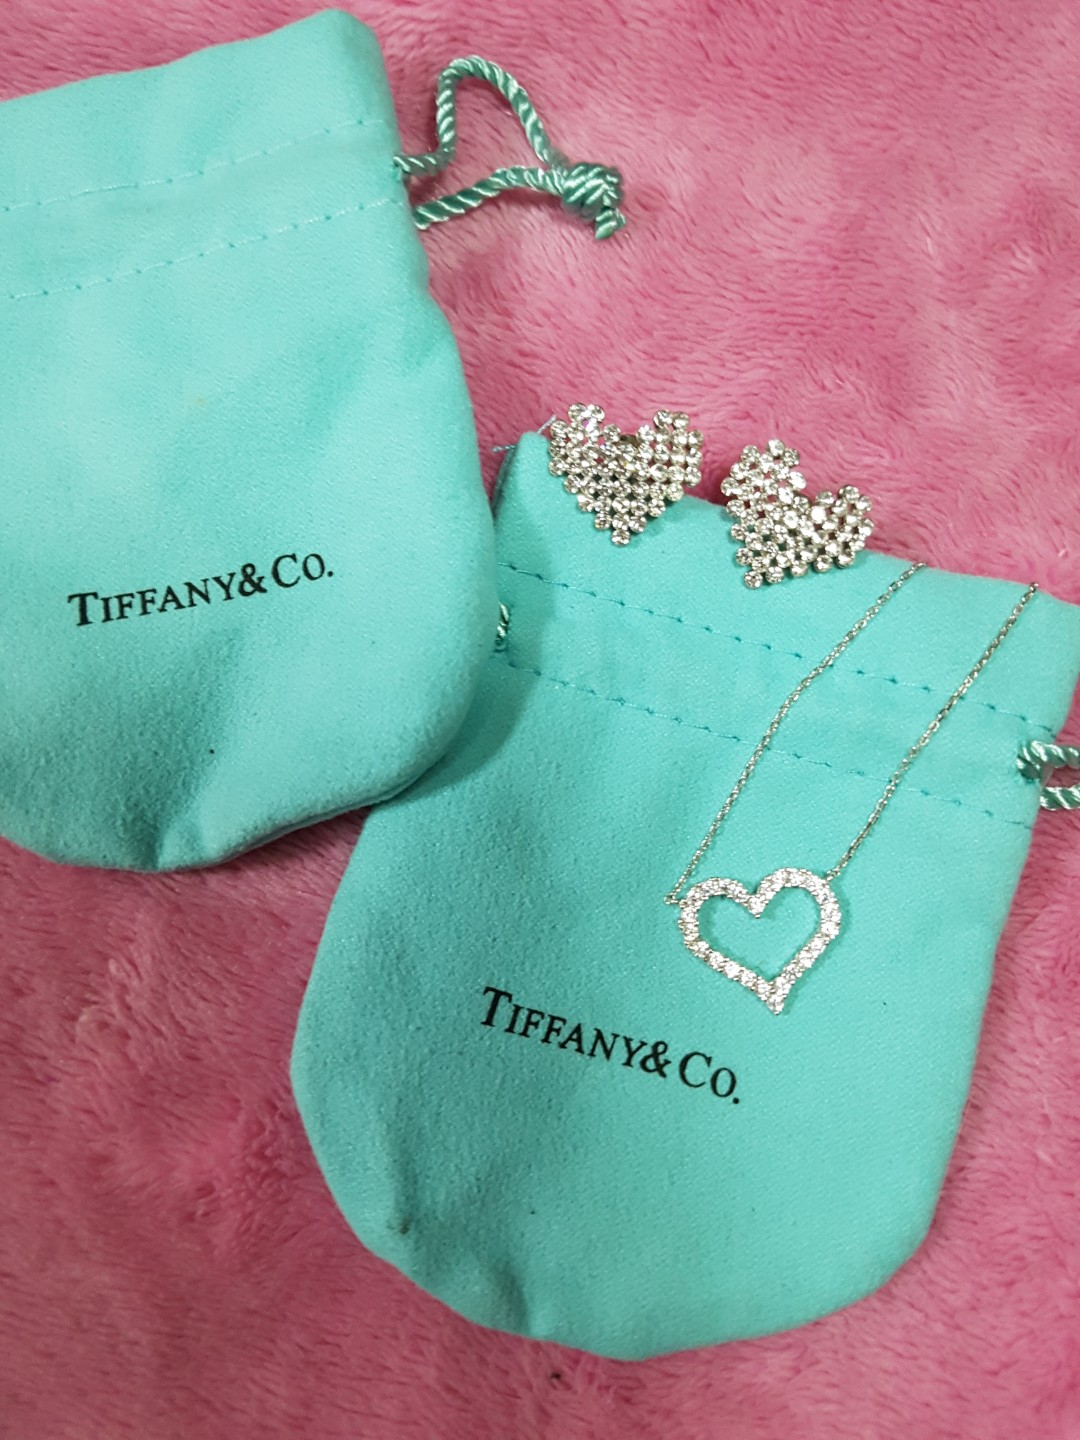 Tiffany & Co. Open Heart Necklace and Pave Heart Earring Set